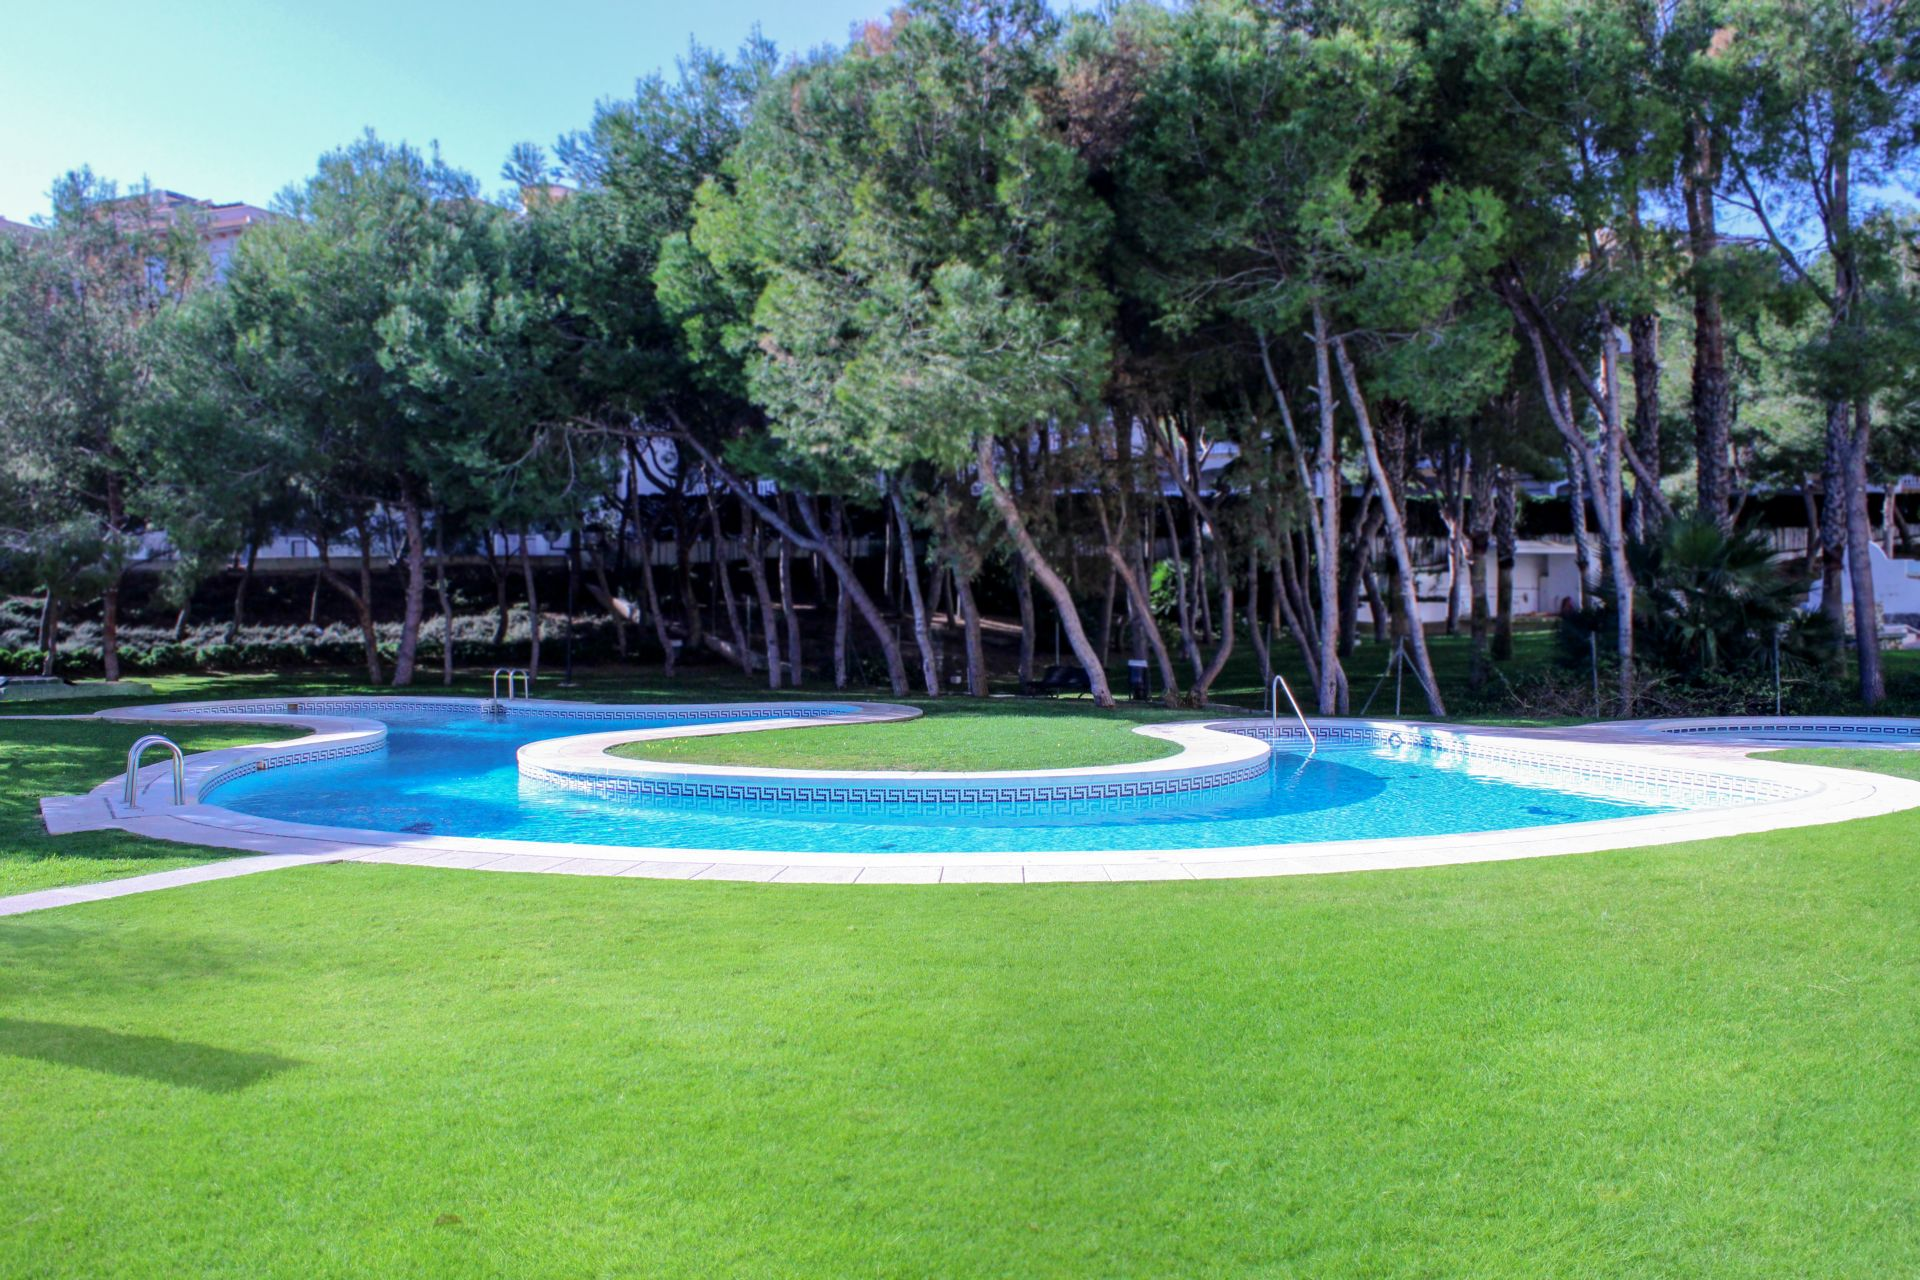 Apartments in Dehesa de campoamor 19